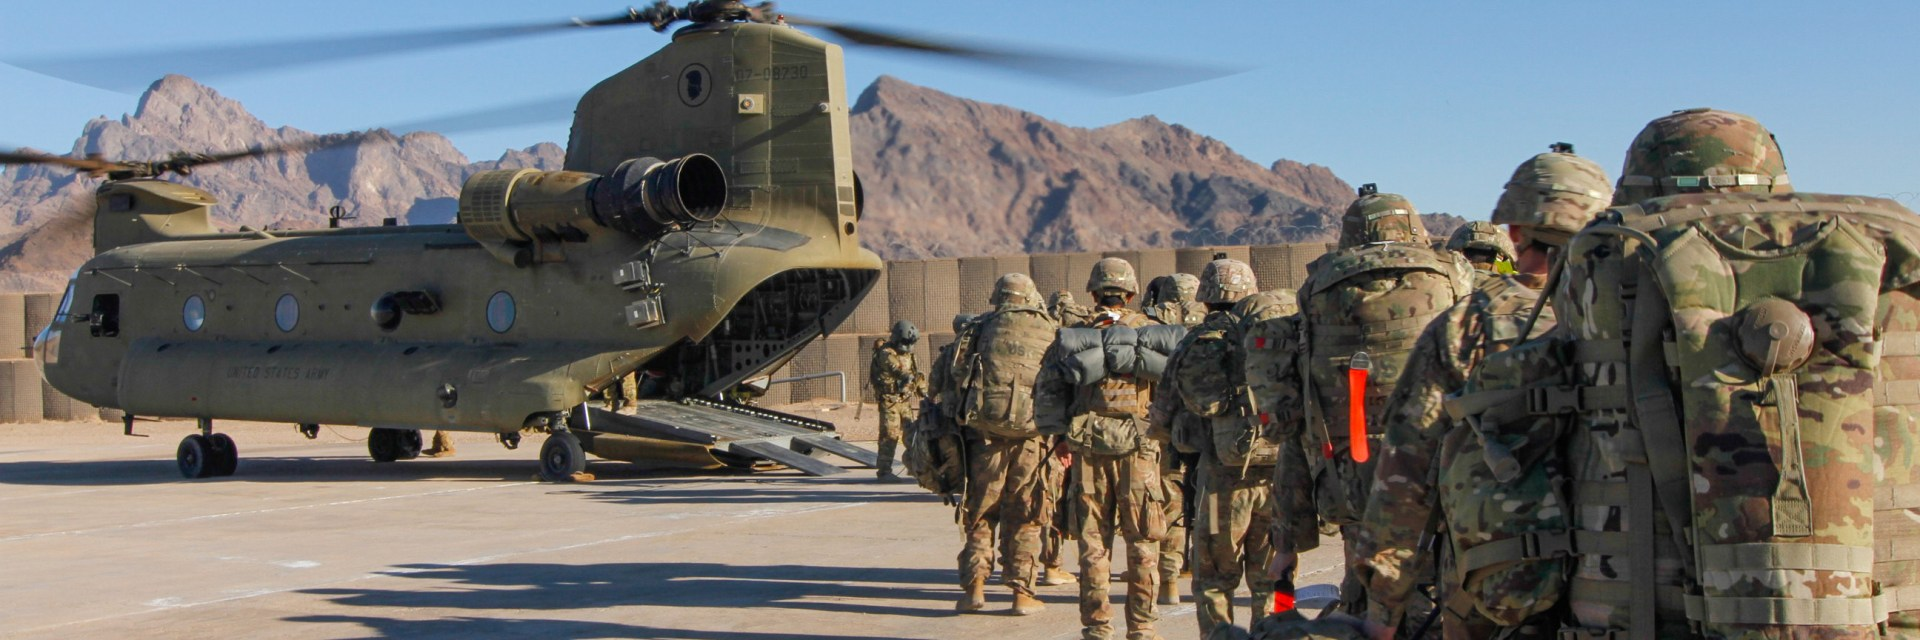 5,000 Troops for 5 years: A no drama approach to Afghanistan for the next  US president